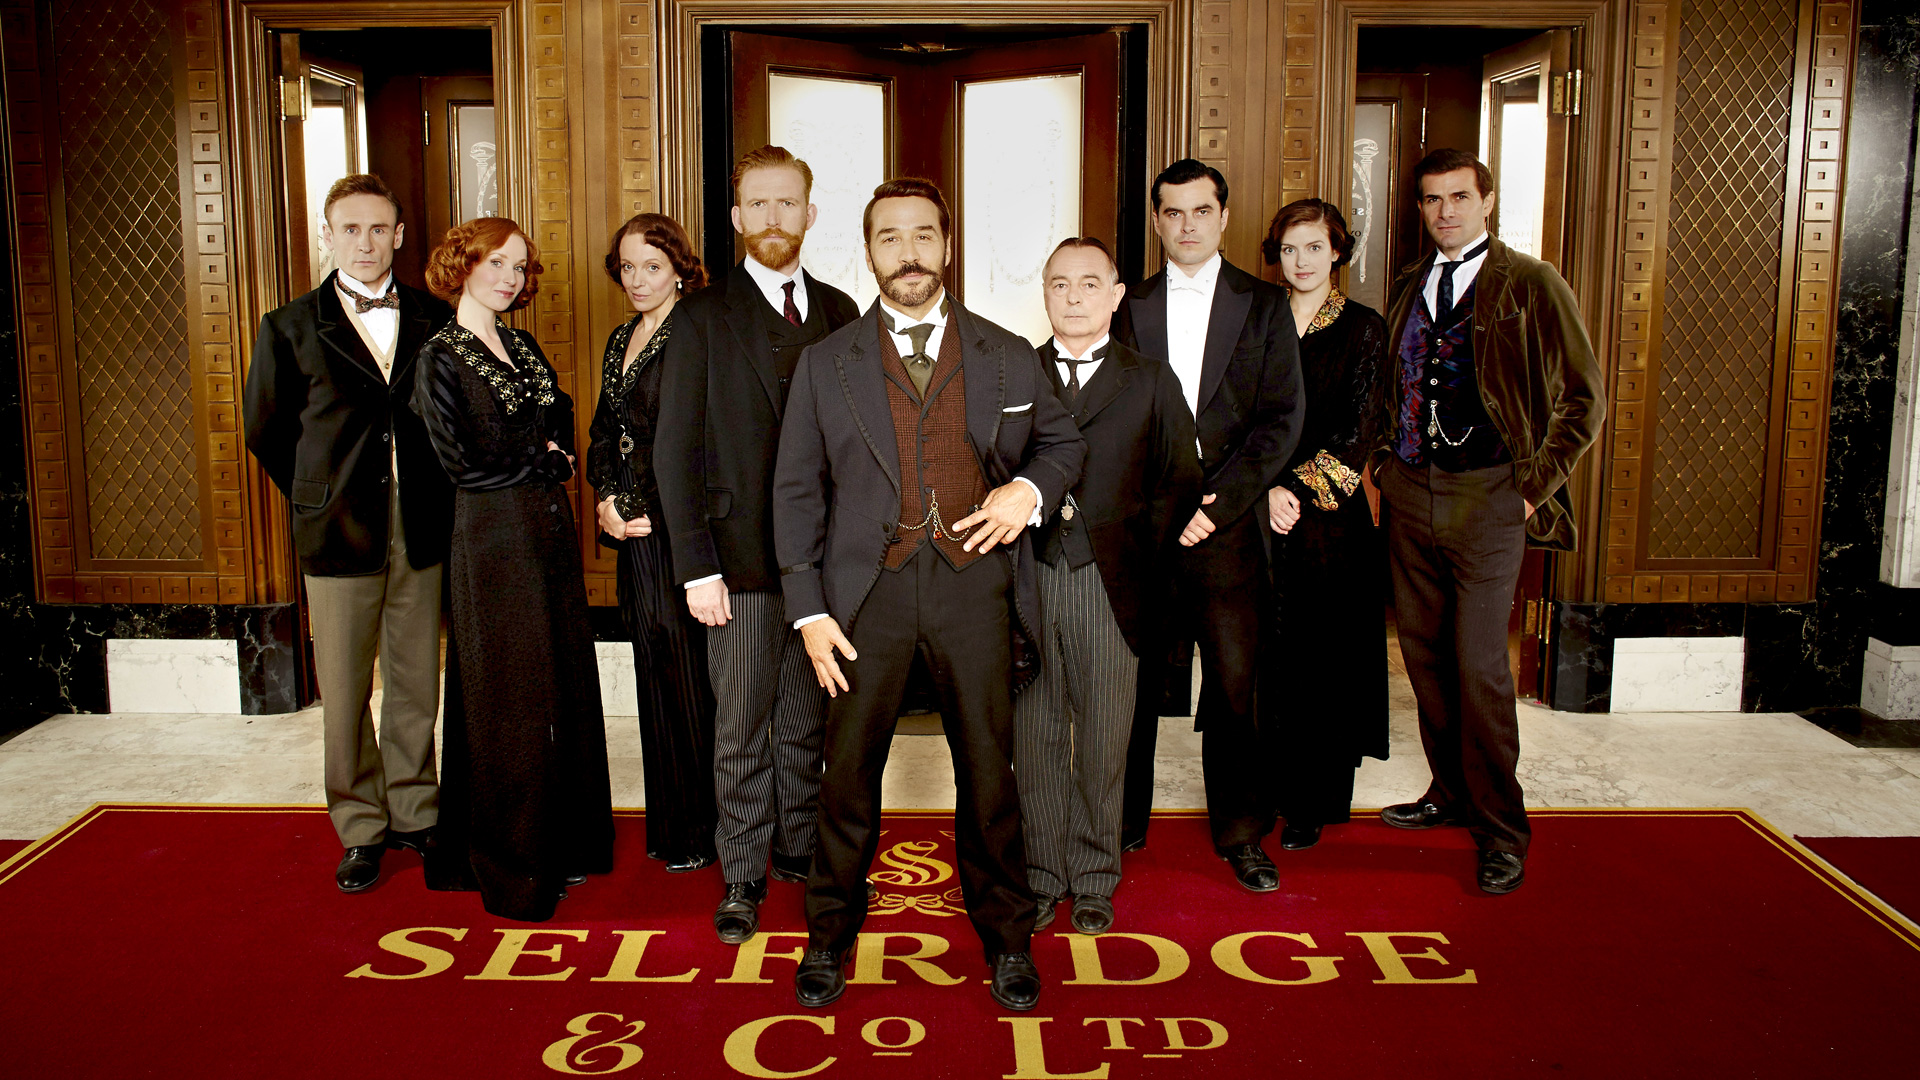 Mr. Selfridge: Season 3 Ep. 5